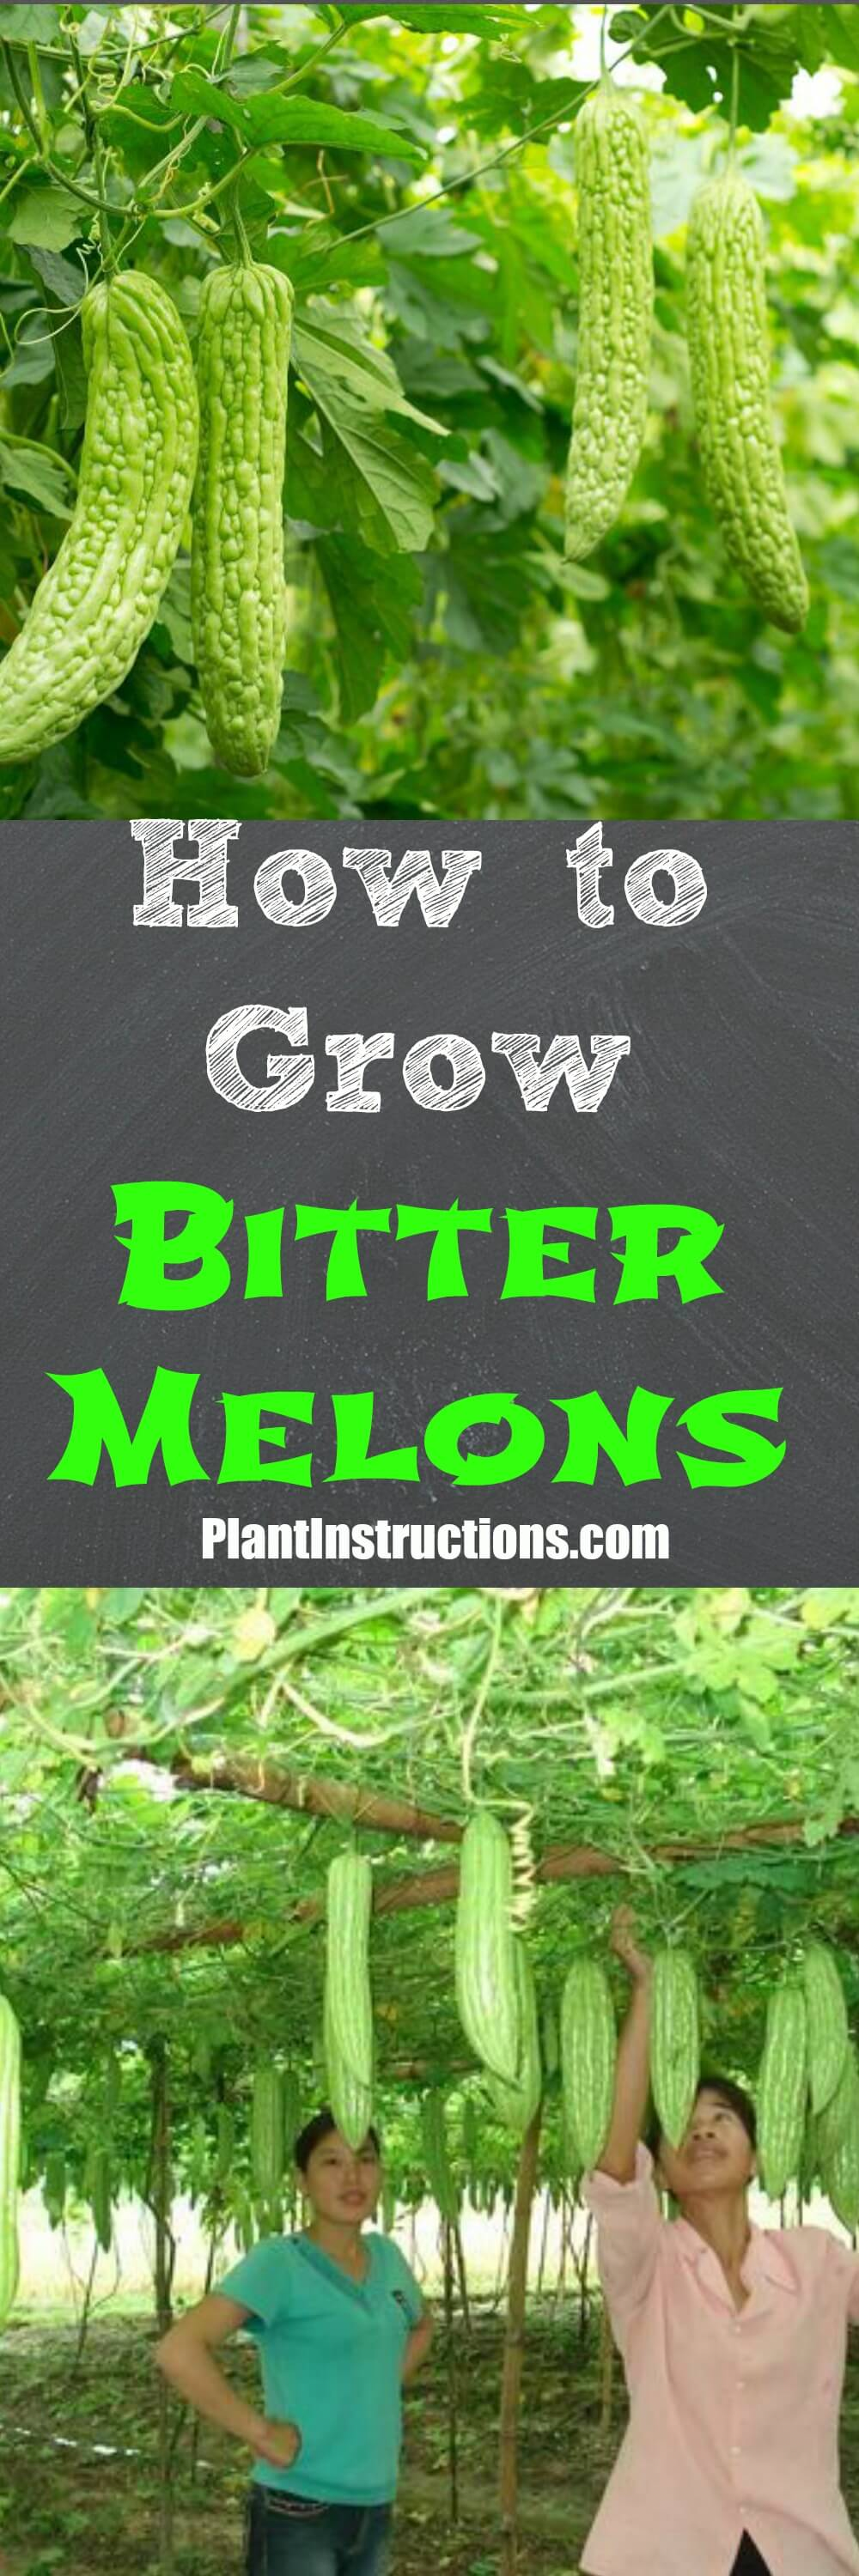 How To Grow And Divide Peonies: How To Grow Bitter Melon